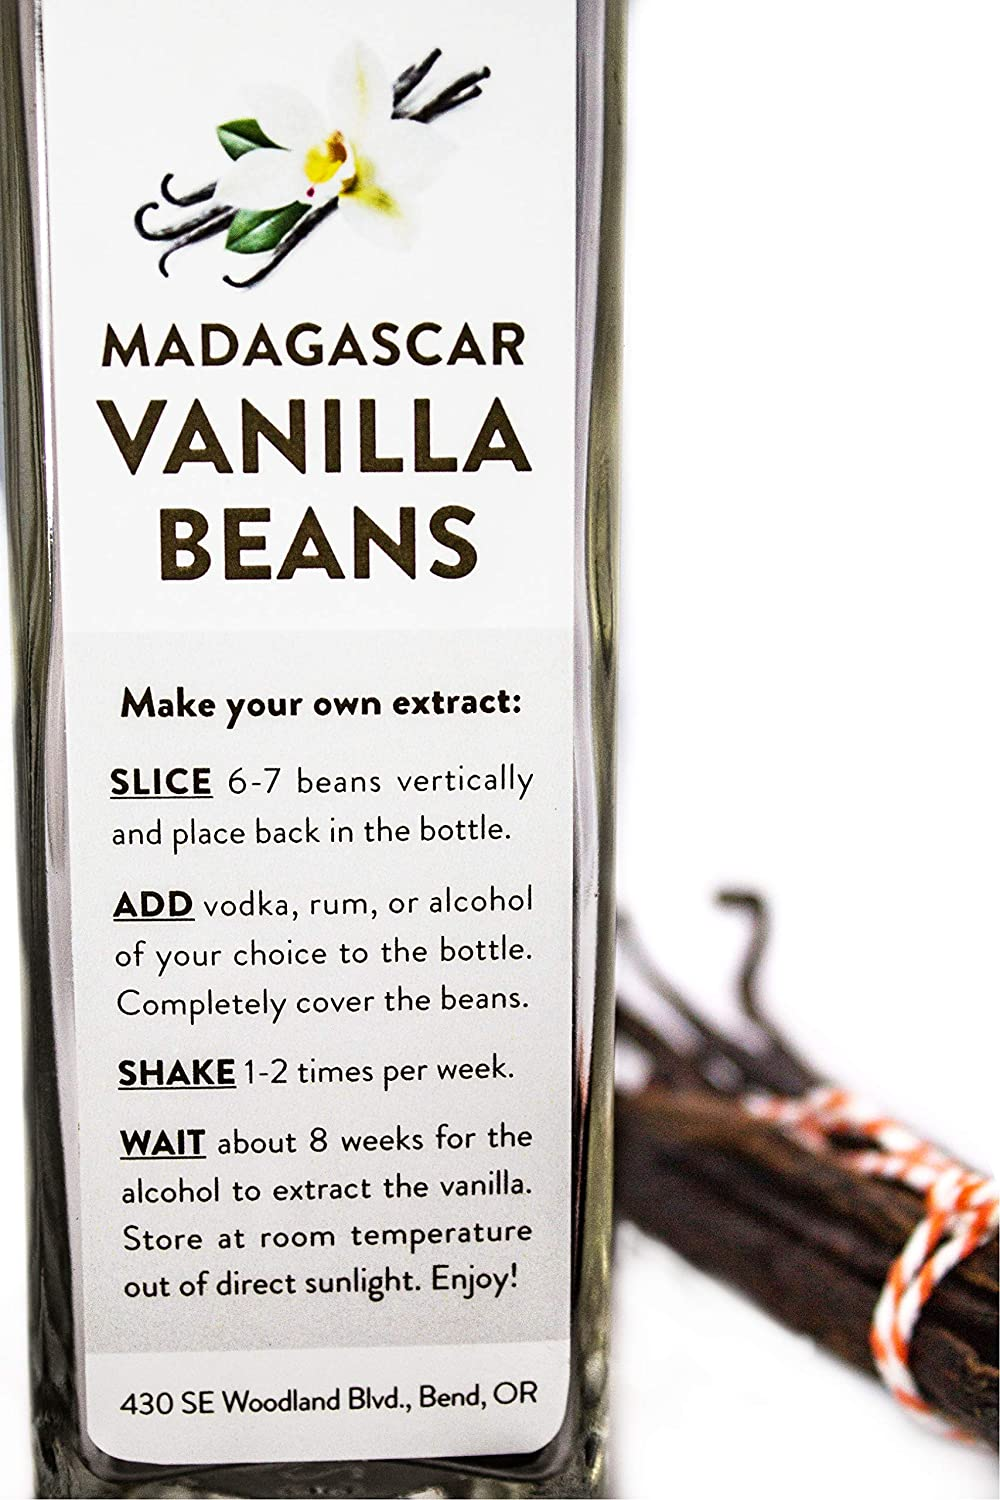 Amazon.com : 6 Madagascar Bourbon Vanilla Beans in Extract Bottle, Grade A Whole Beans for Baking, Extract or Kahlua (6 Madagascar Vanilla Beans) : Grocery ...